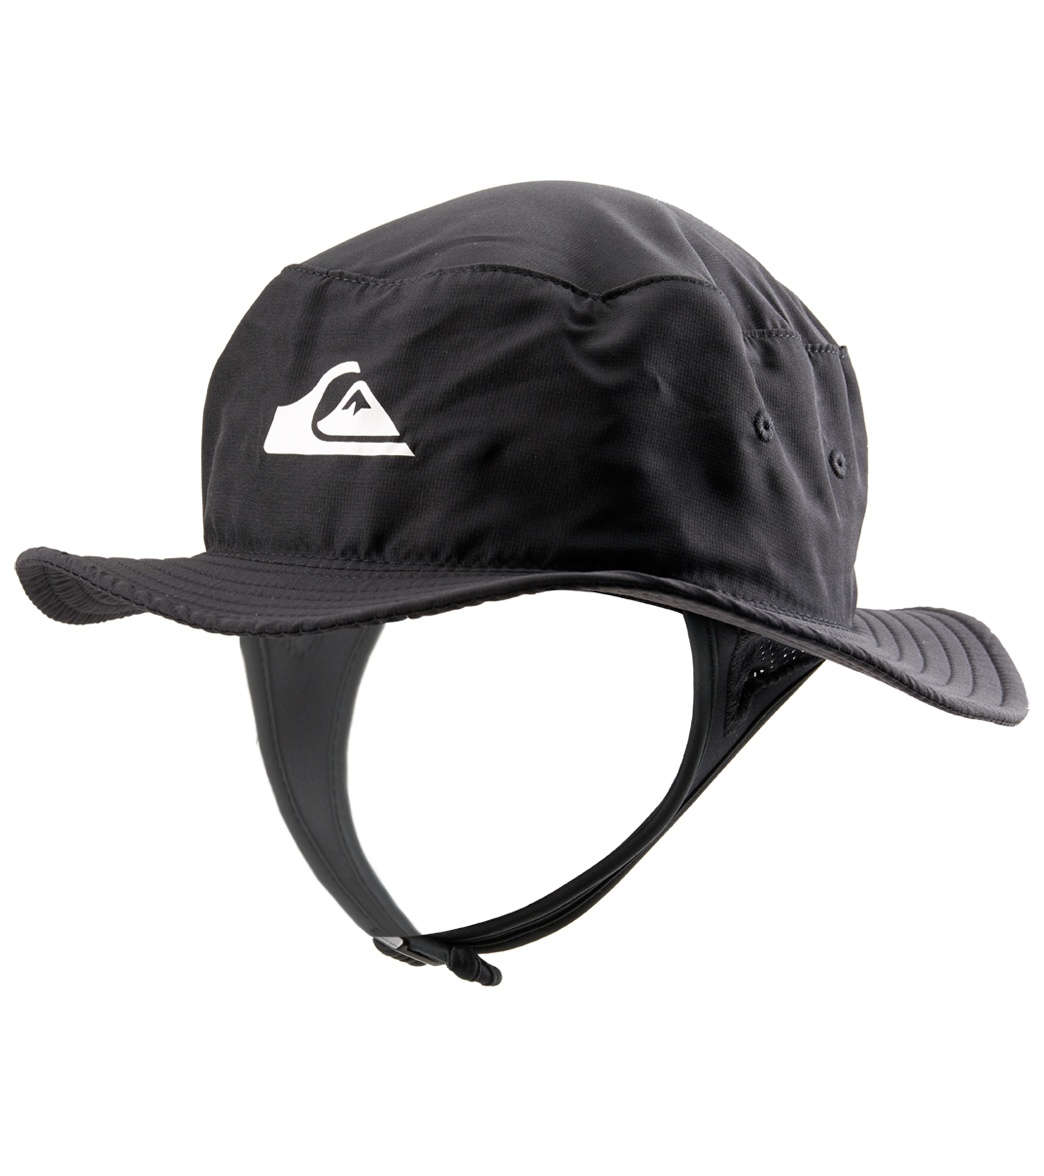 Quiksilver Bushmaster Surf Hat at SwimOutlet.com 5e5996ceaf3